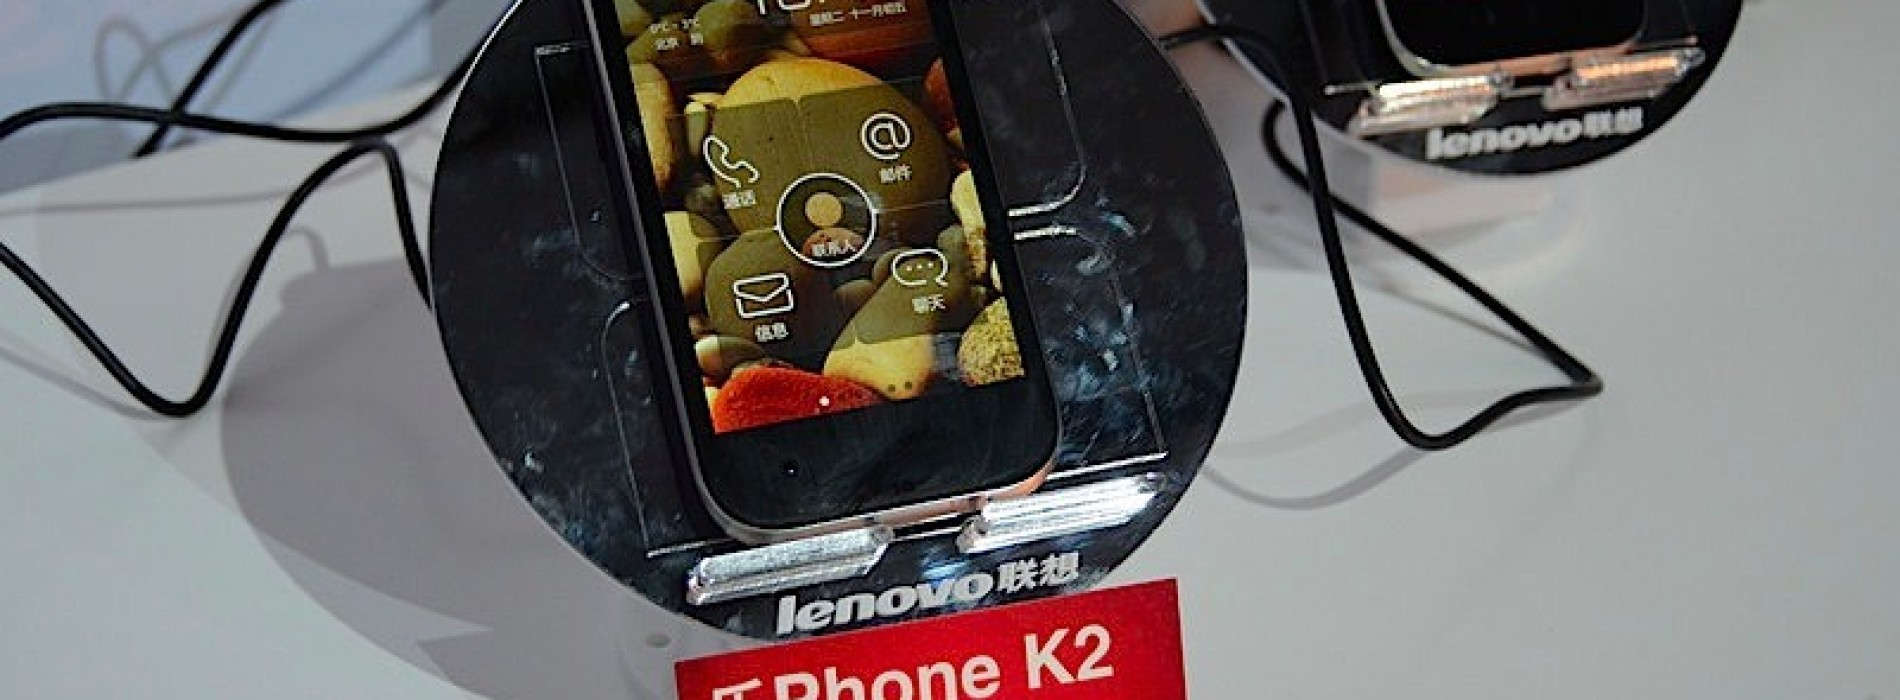 Lenovo LePhone K2 impresses, leaves us wanting more